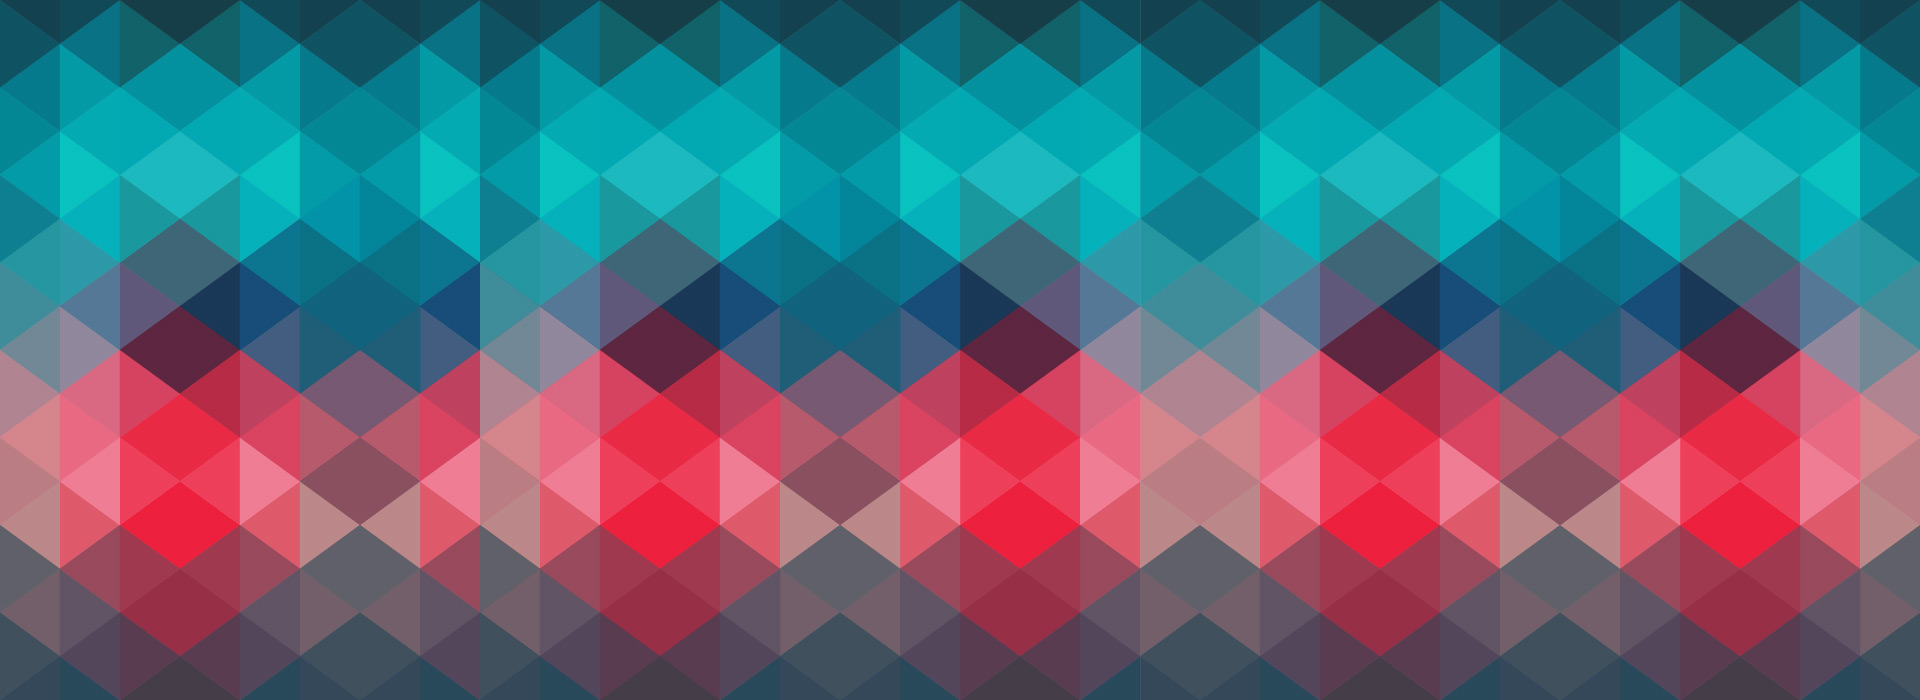 Red blue diamonds pattern background